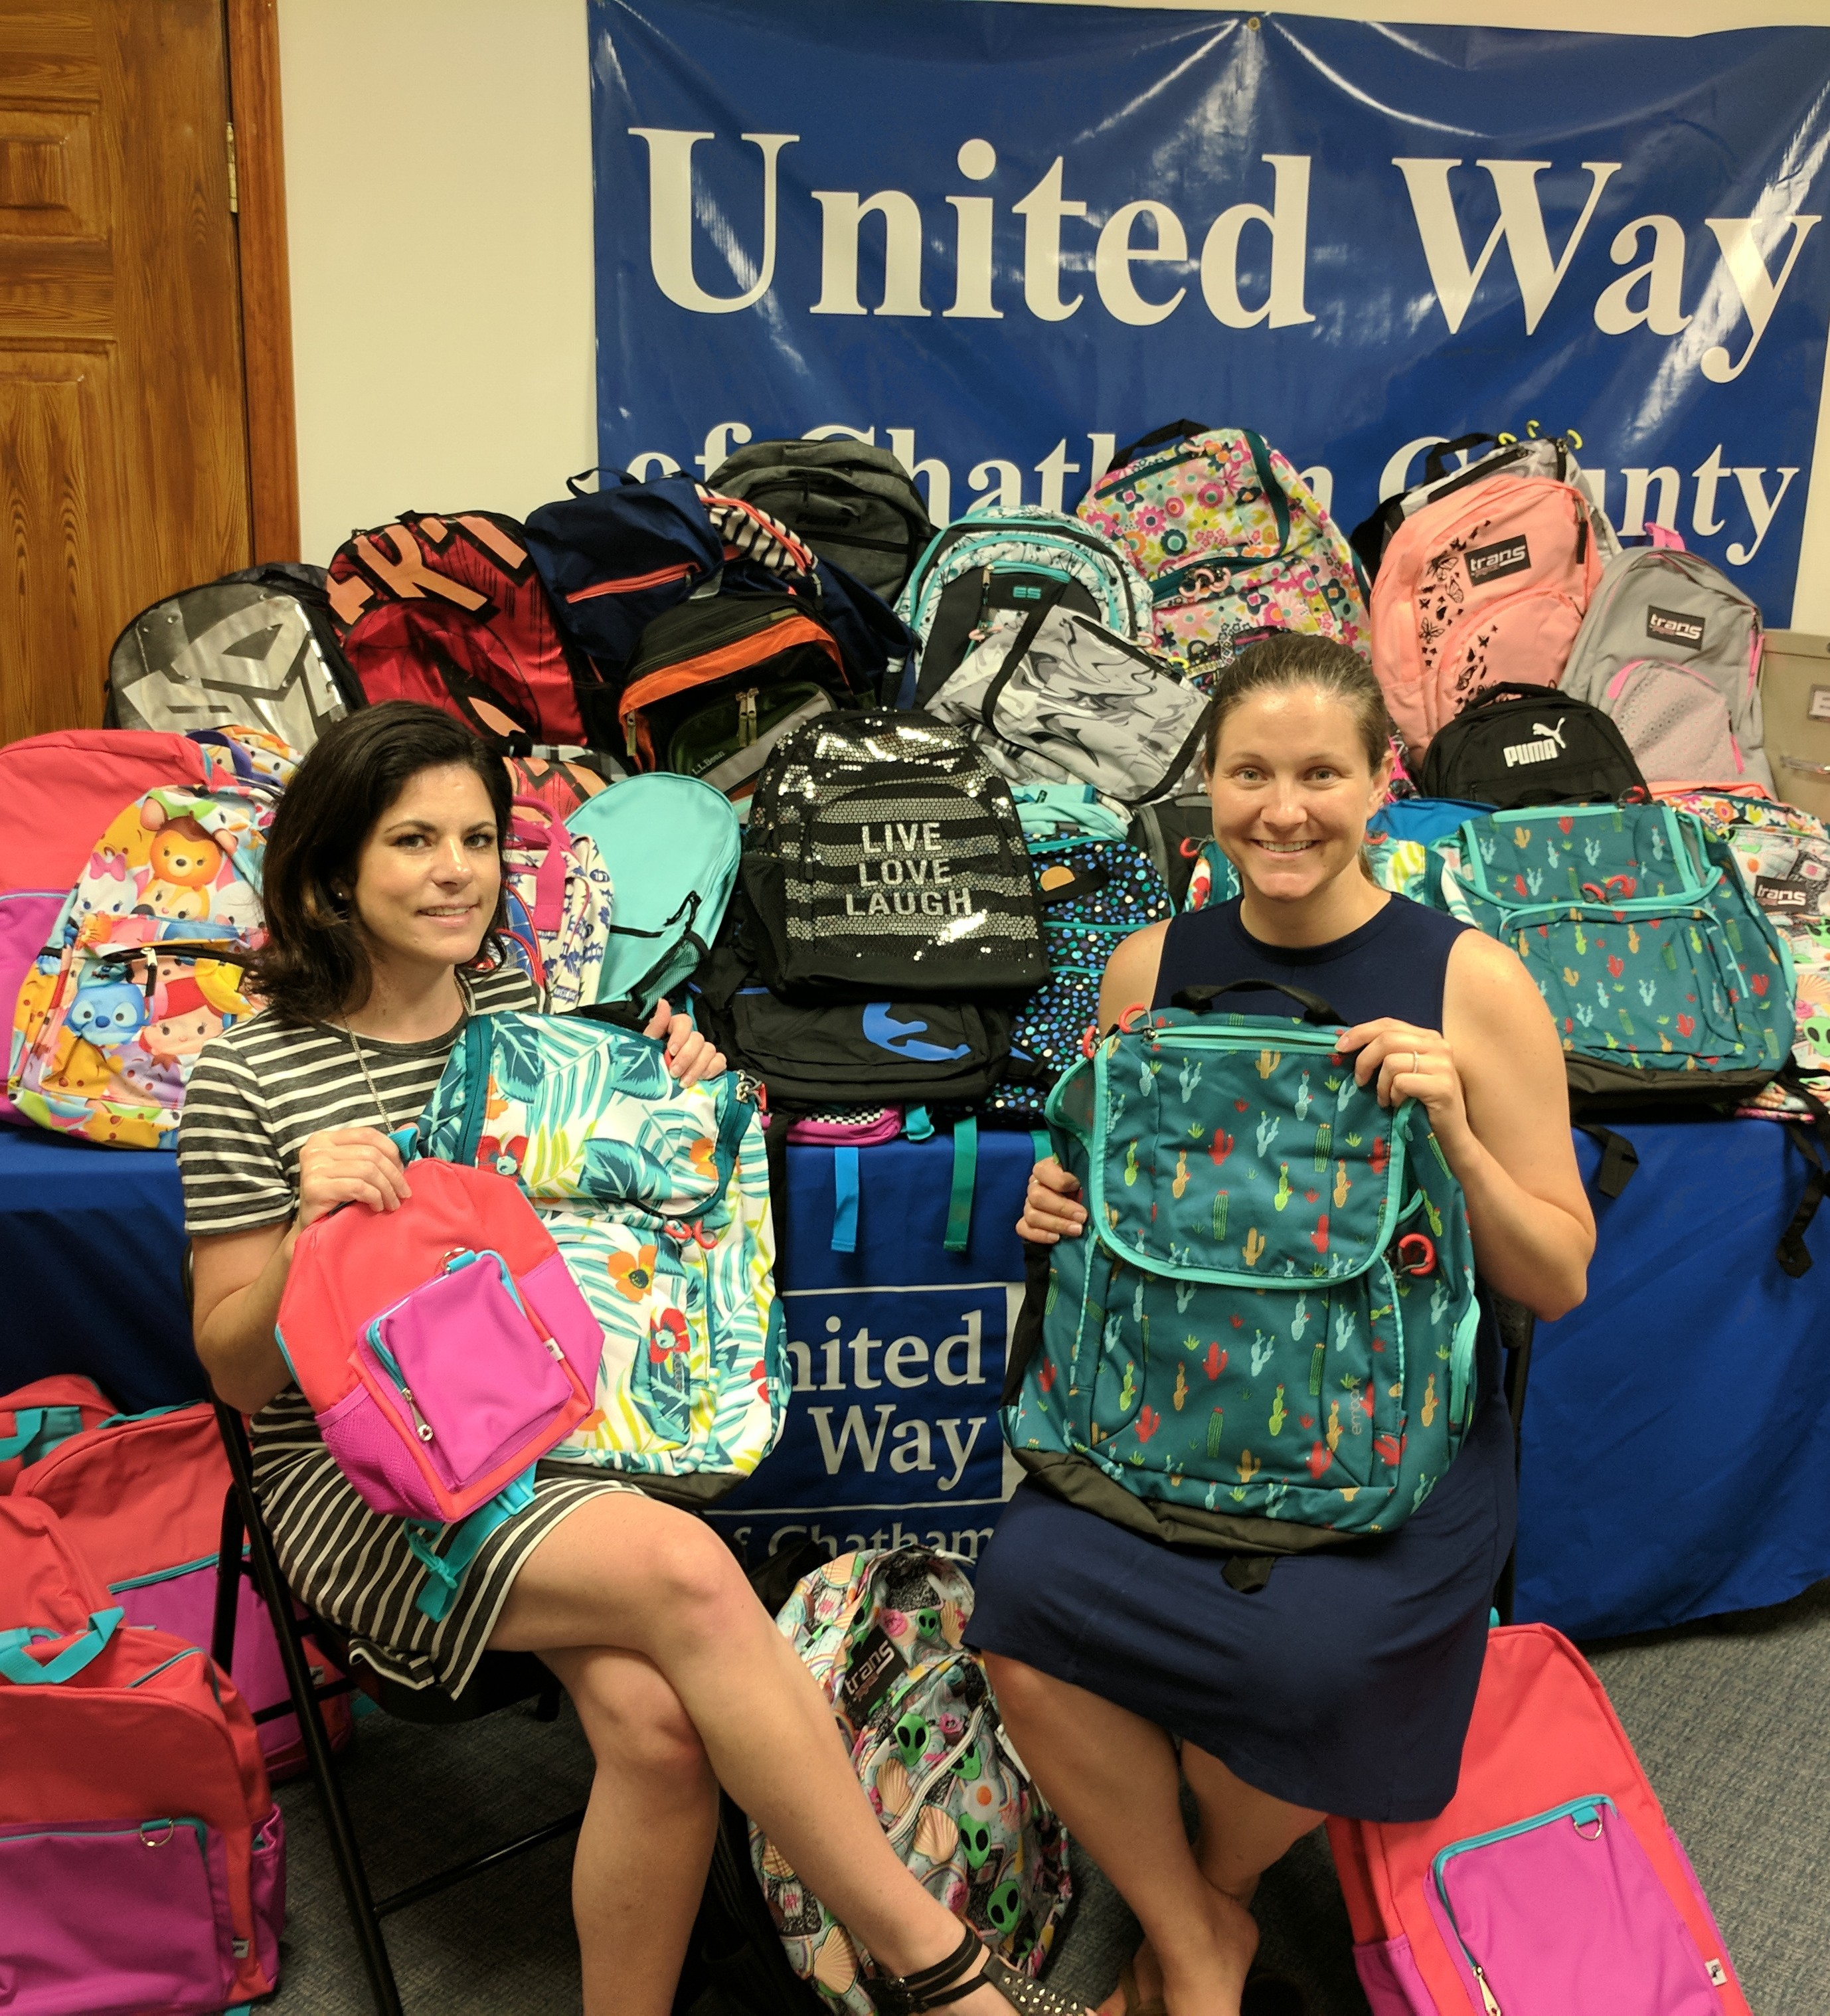 United Way staff members prepare donated supplies for schools.